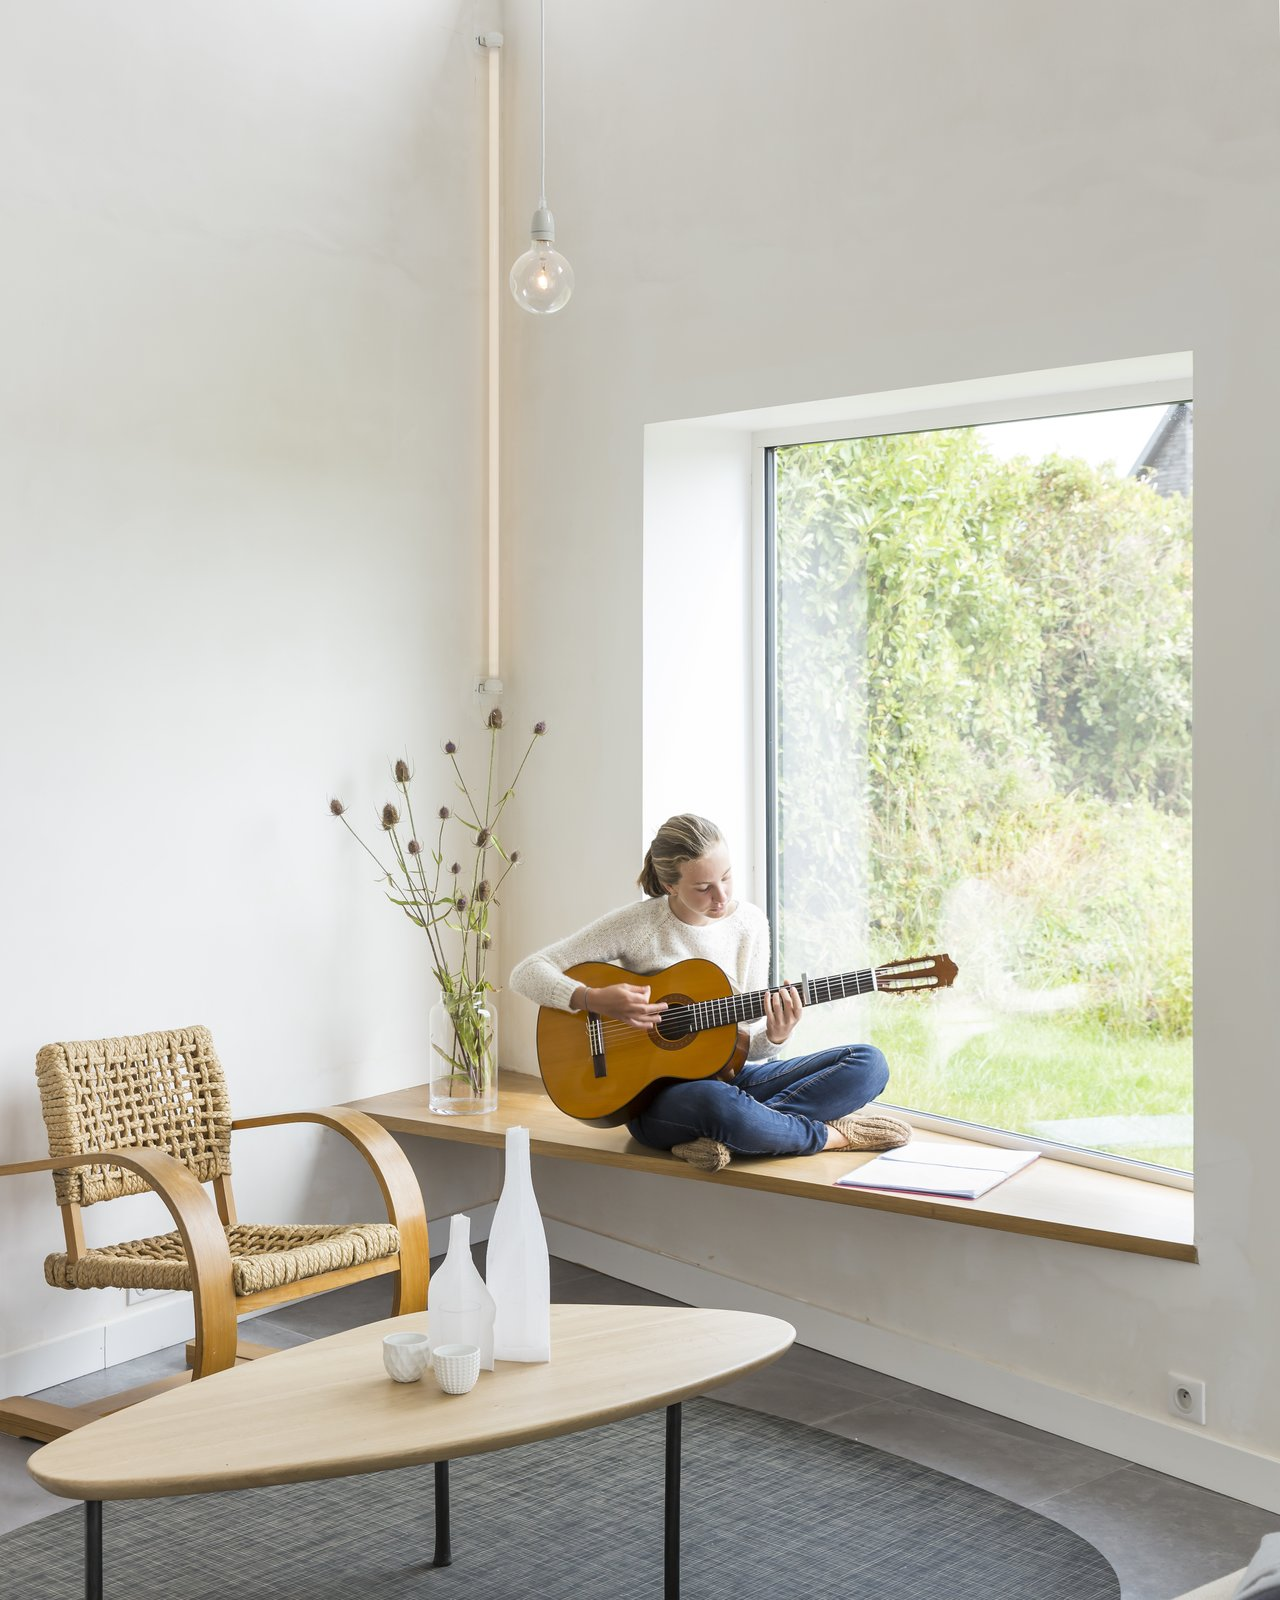 A bench by a window on the southern facade provides a sunny perch for reading, sipping coffee, or playing guitar.  Photo 4 of 10 in Framing the Landscape and Capturing Light, a Photographer's Home and Studio Echoes His Work